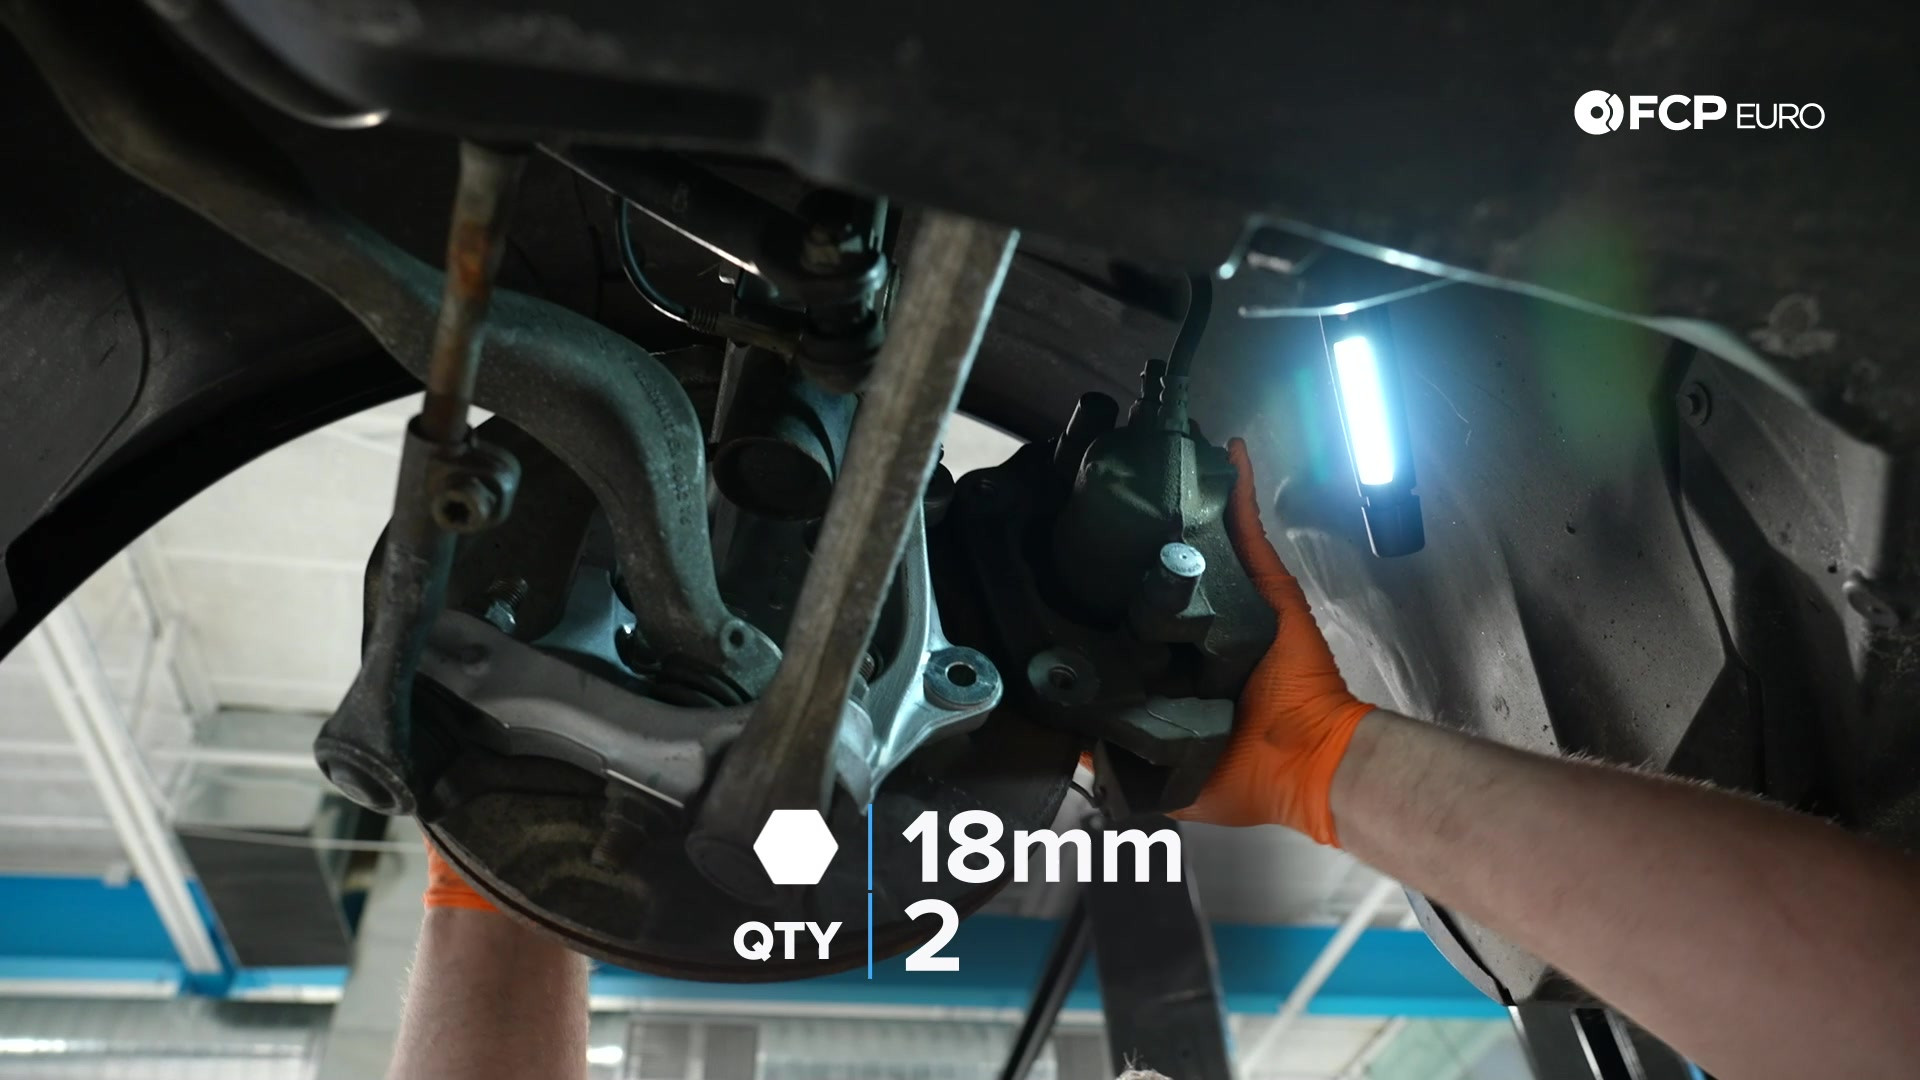 DIY BMW E90 Steering Knuckle Replacement tightening the dust shield's bolts